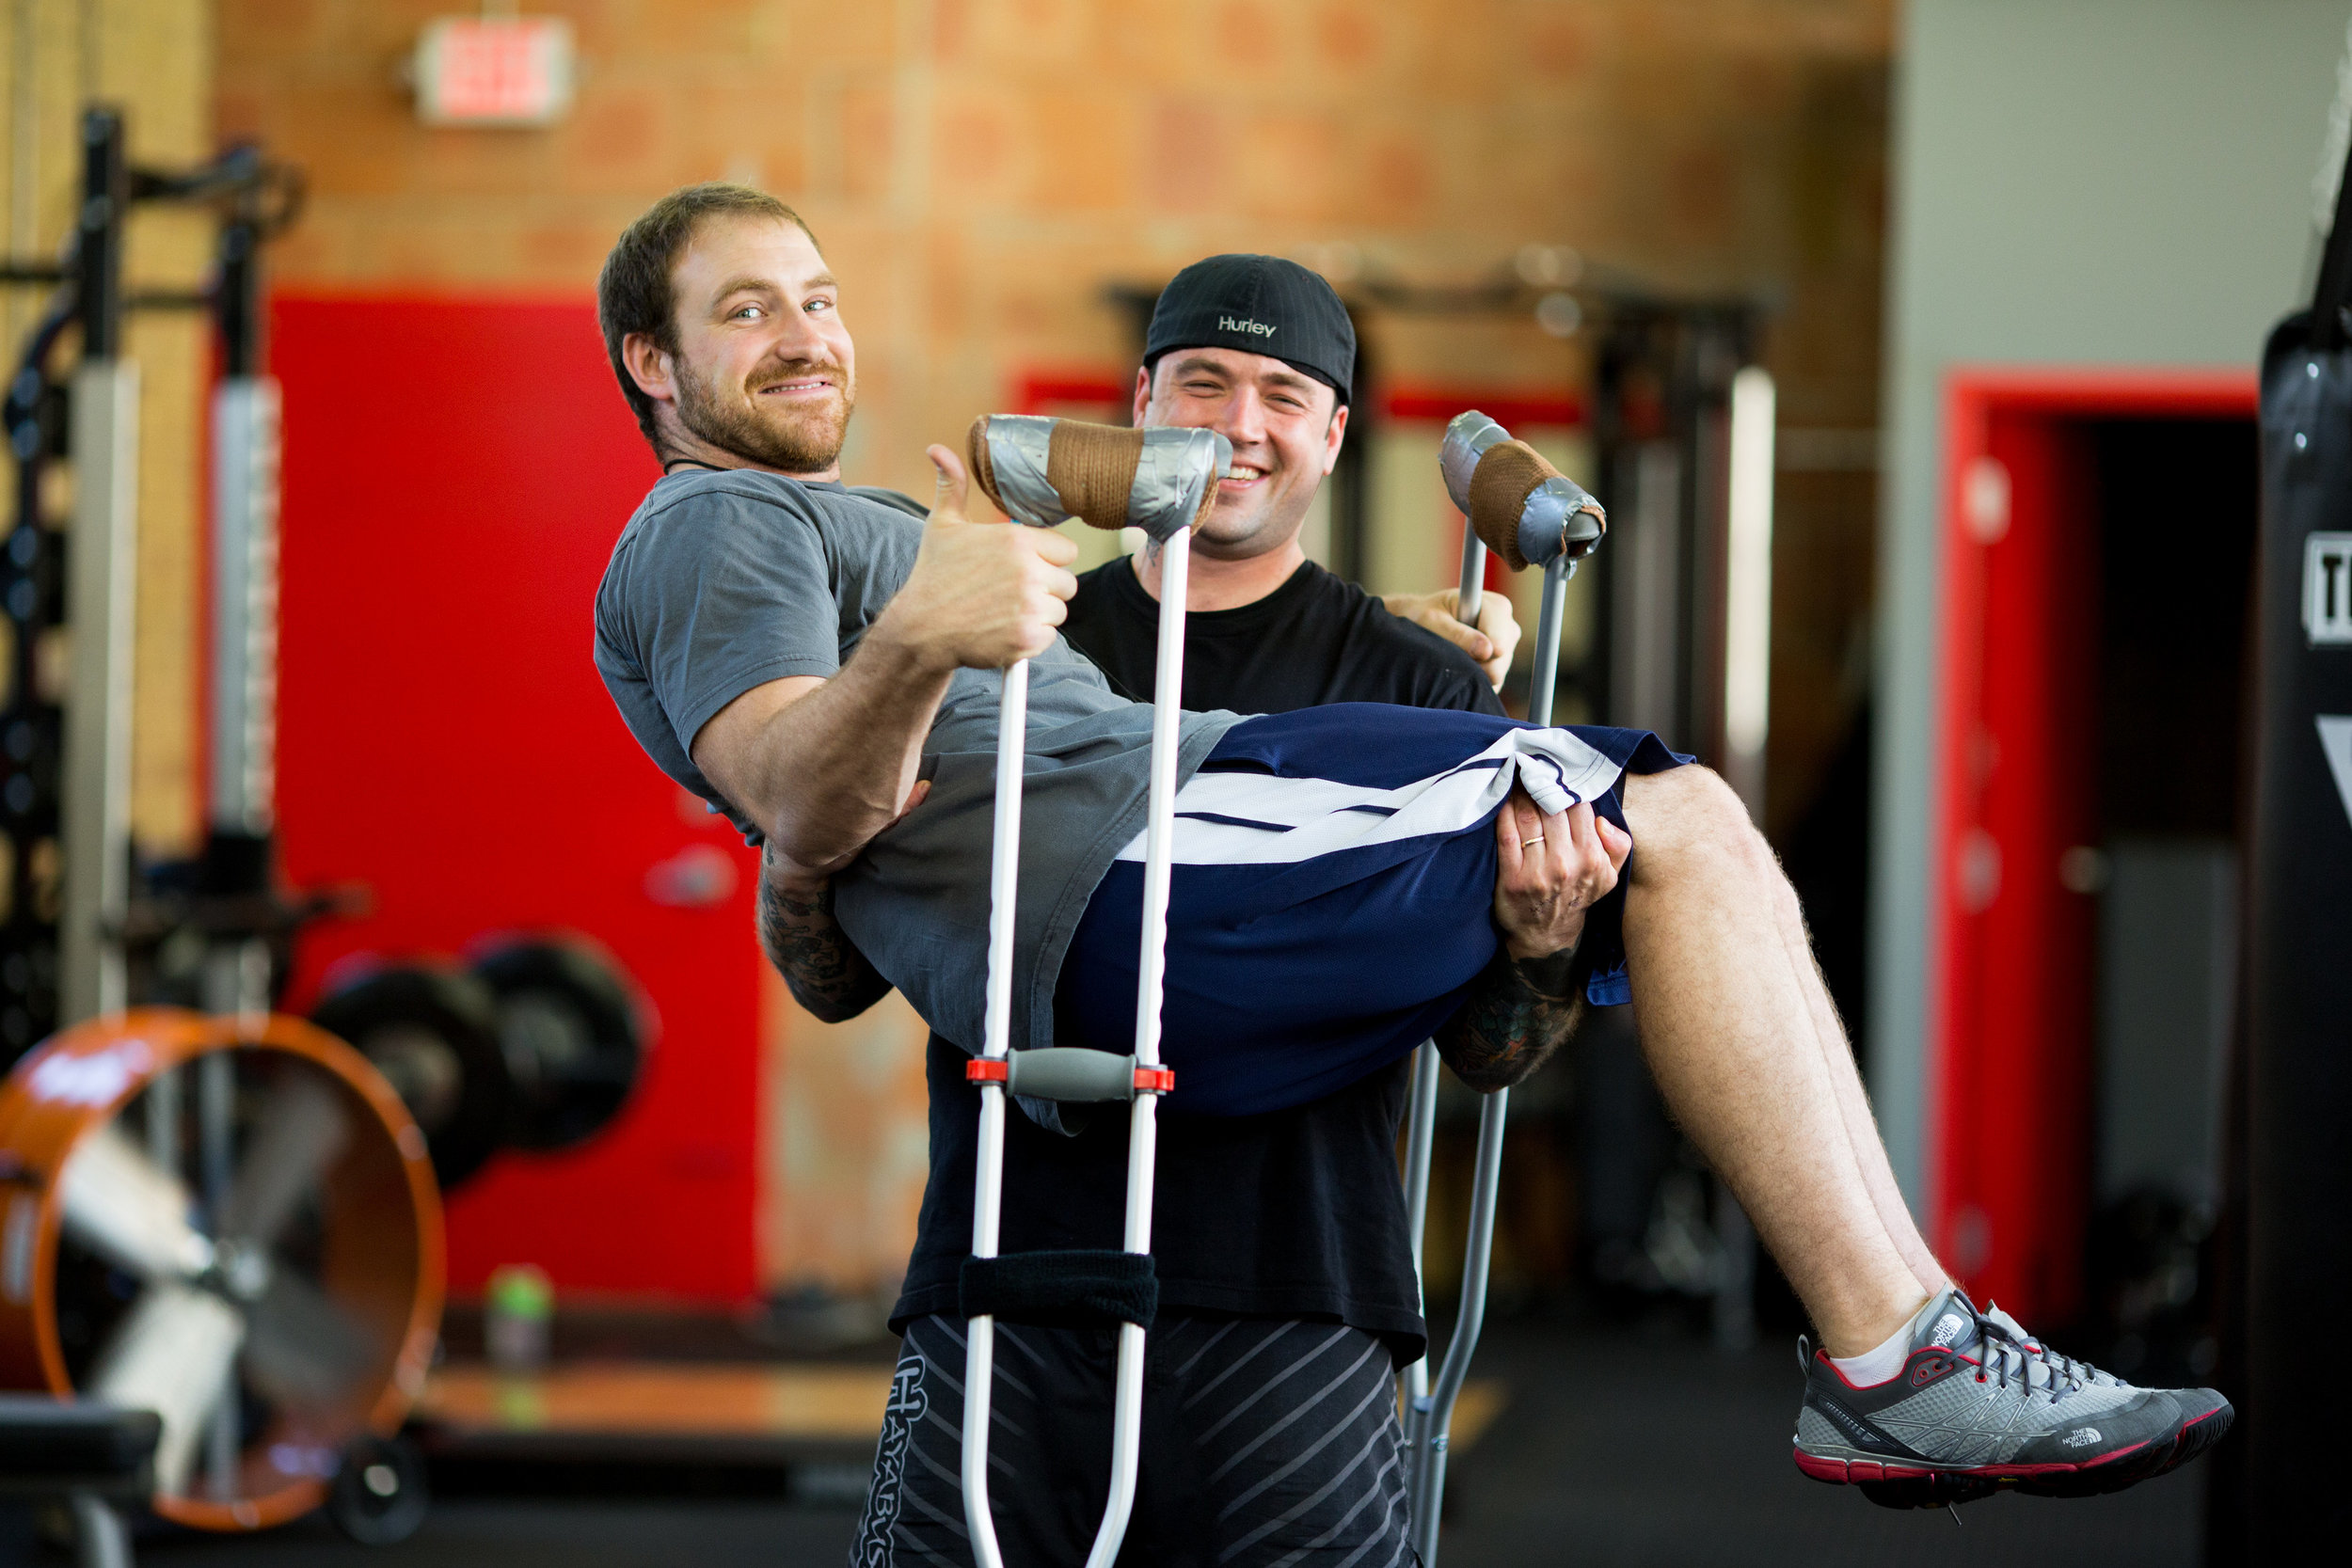 Jason, during his rehab, with fellow trainer Aldon